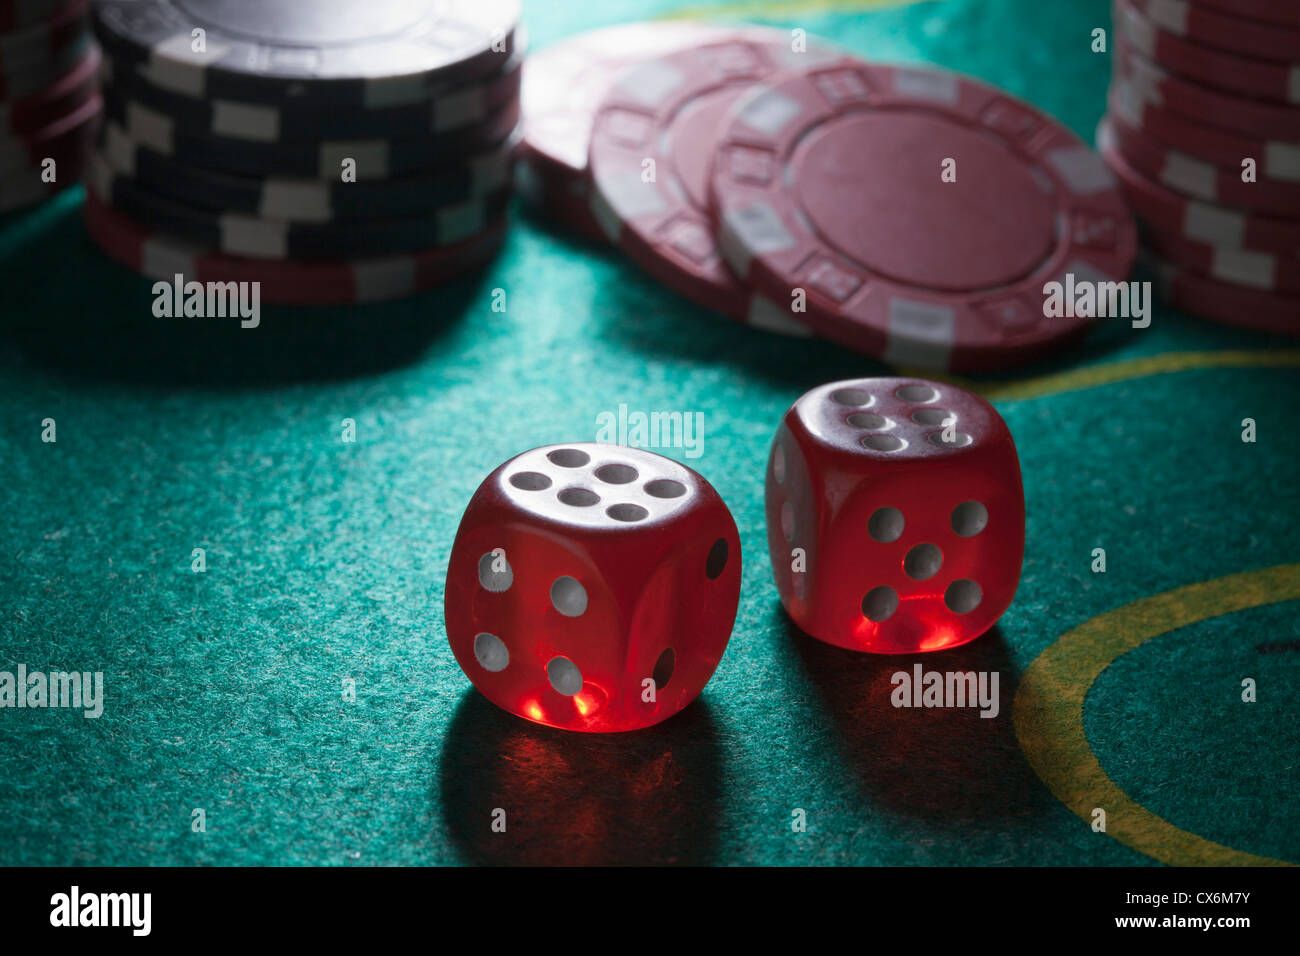 Avala casino budva poker